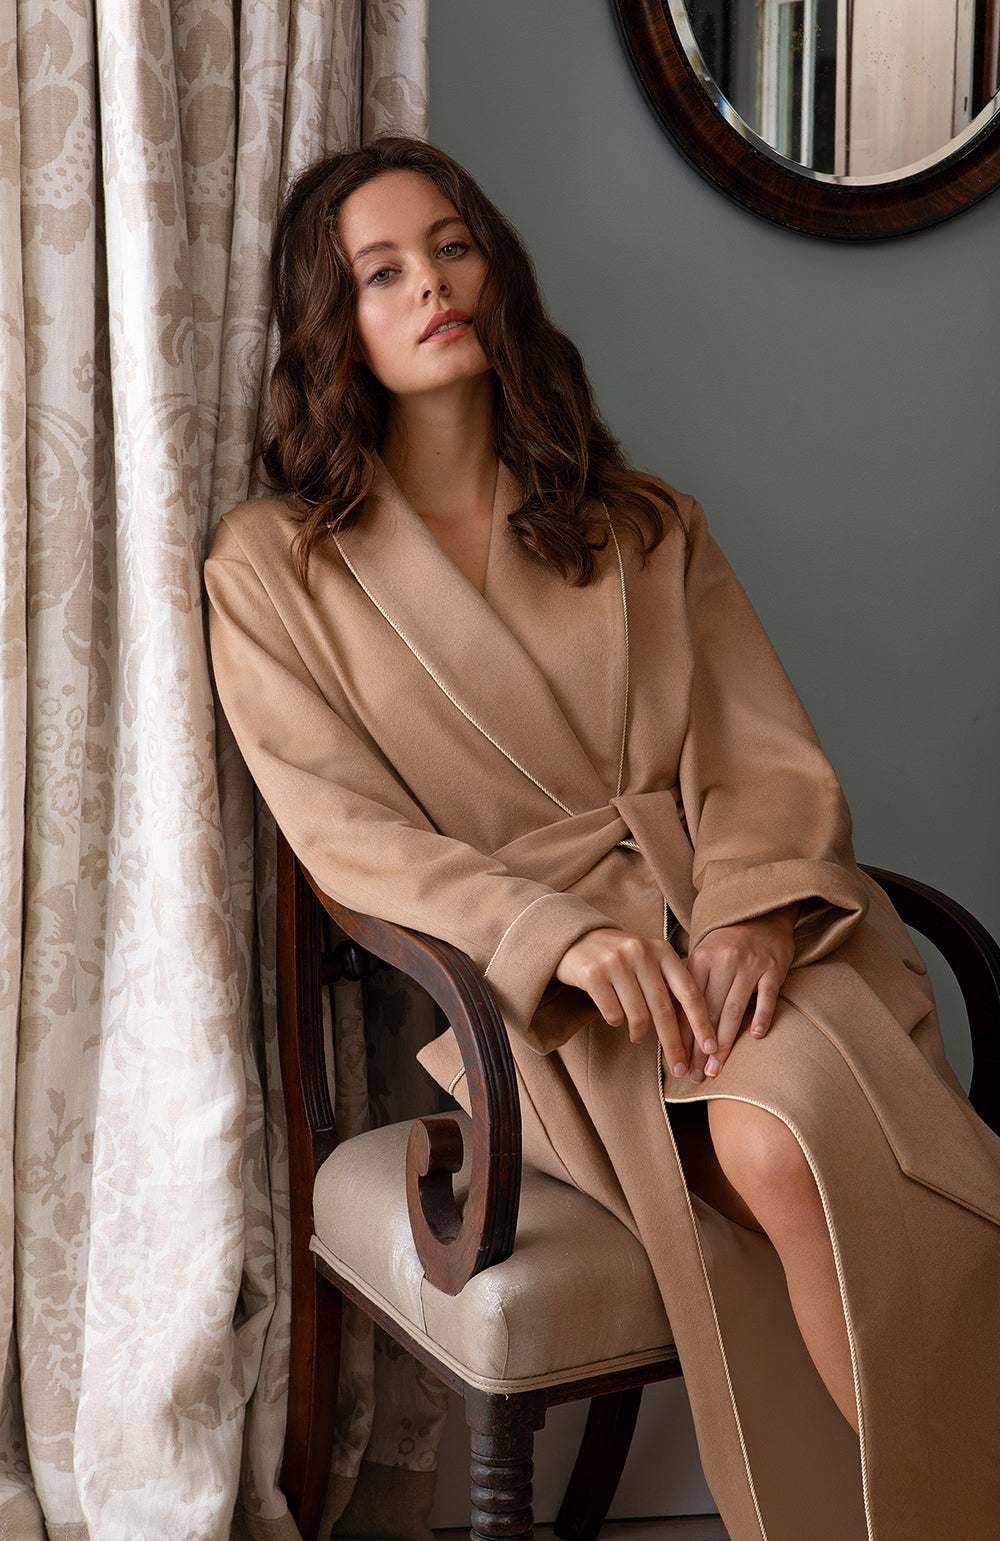 Women's Luxury Camel Cashmere Robe | Bonsoir of London